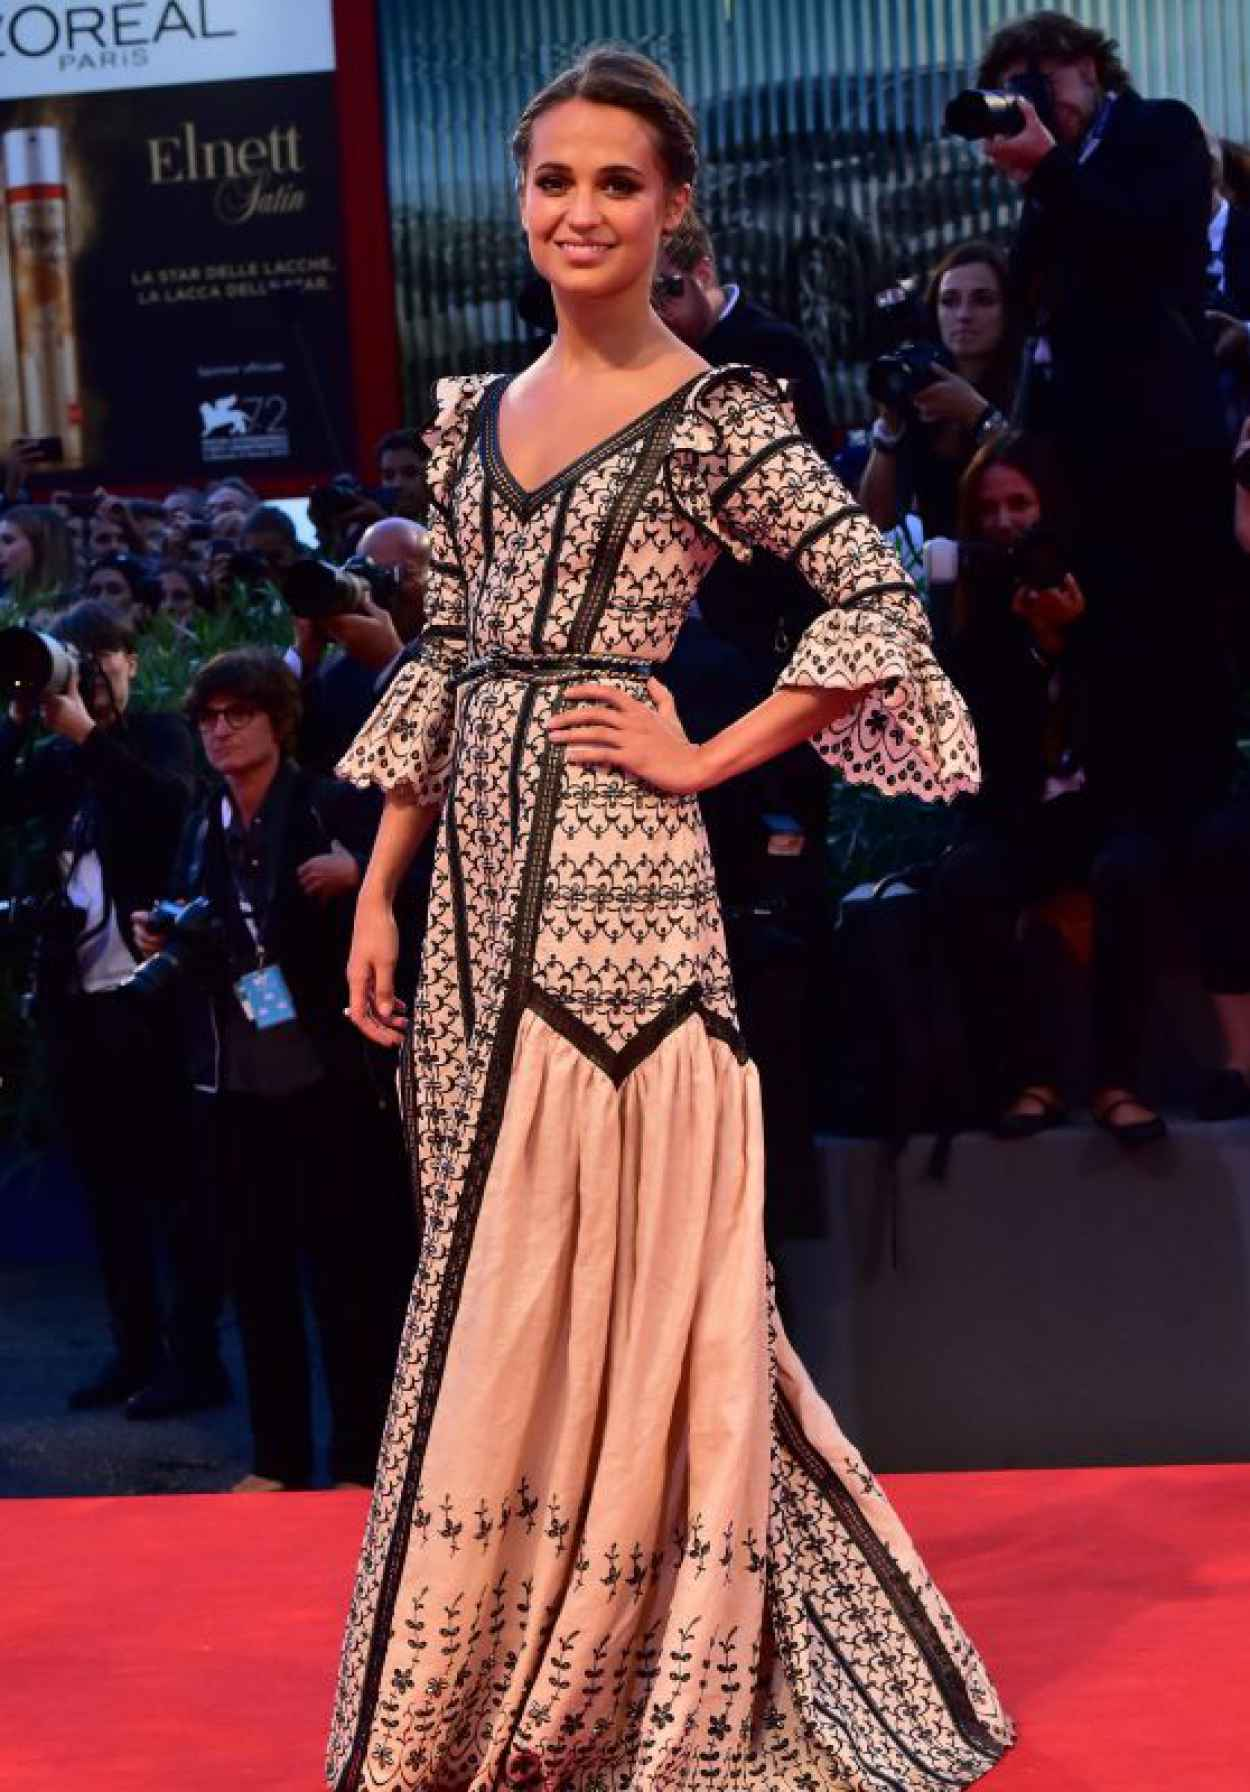 Alicia Vikander - The Danish Girl Premiere - 72nd Venice Film Festival-1